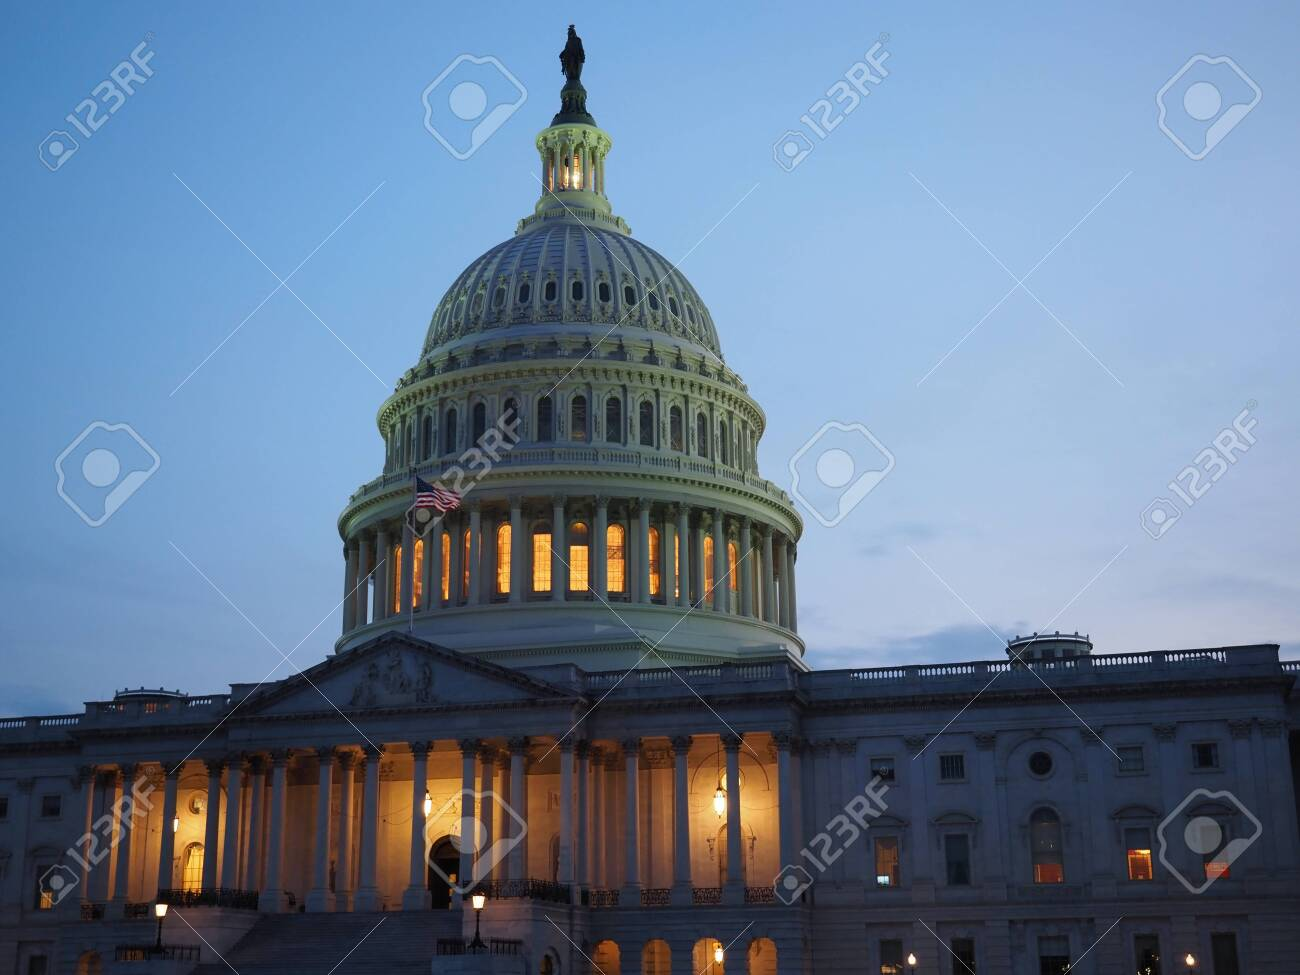 The Capitol Building in Washington D.C. on a summer night. - 145267714